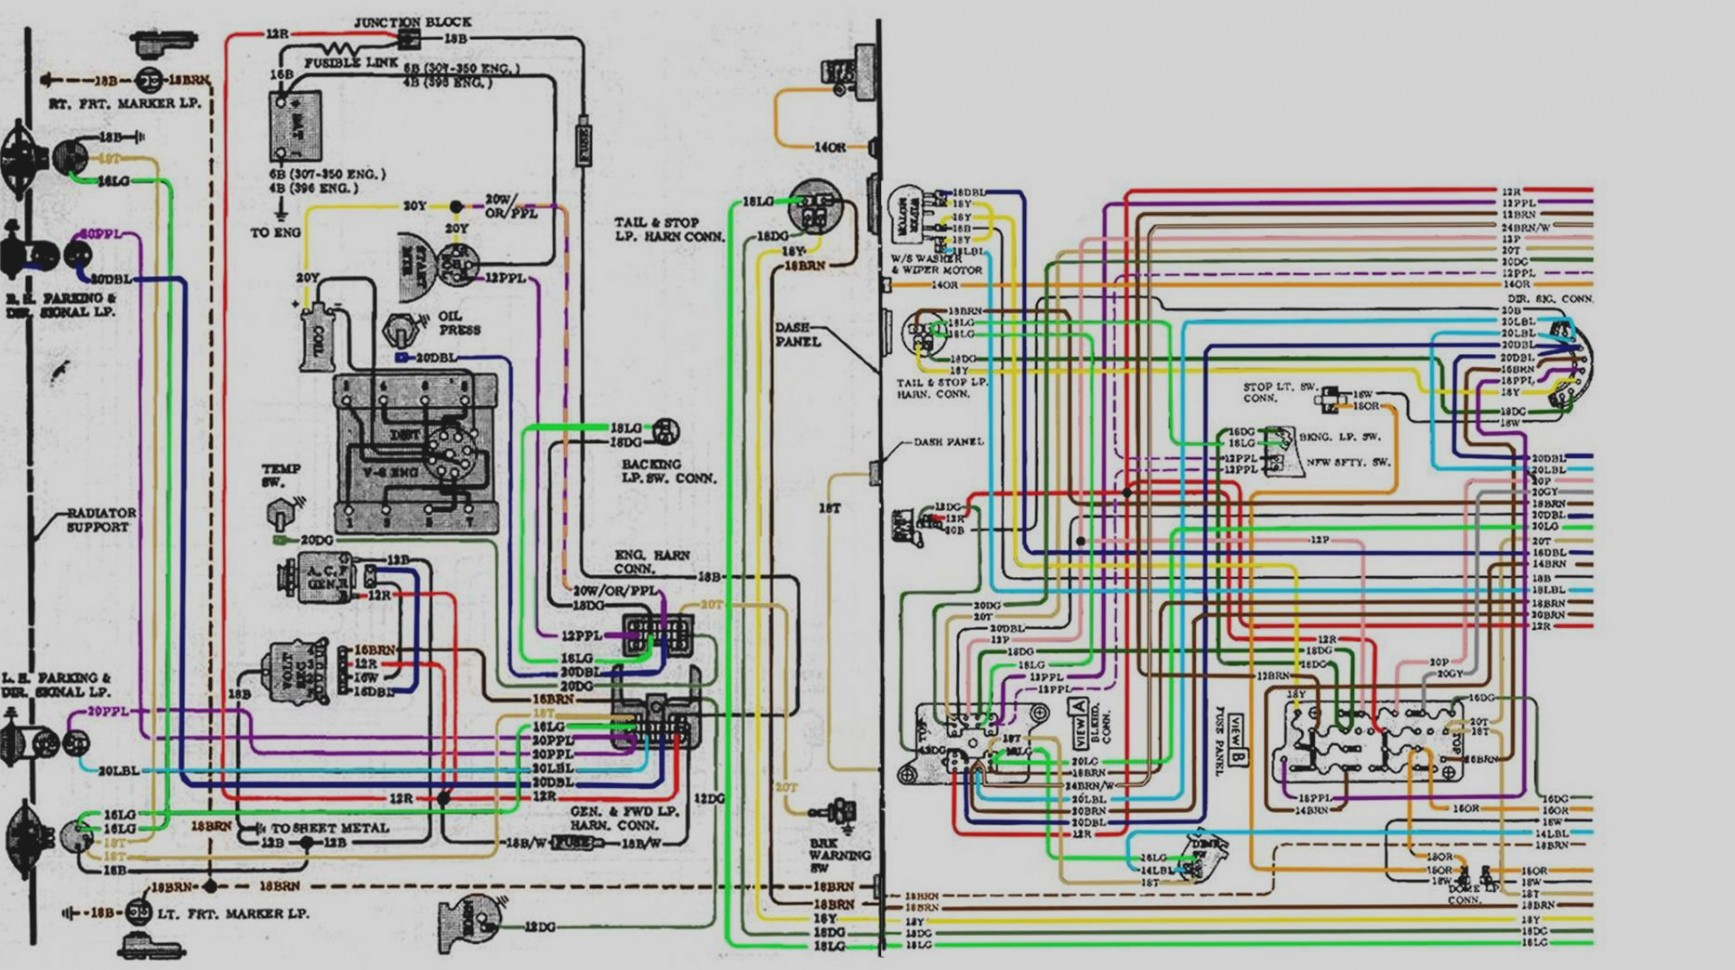 72 chevy wiring diagram 2016 ford fiesta 71 c10 data harness detailed 350 starter 1970 gmc